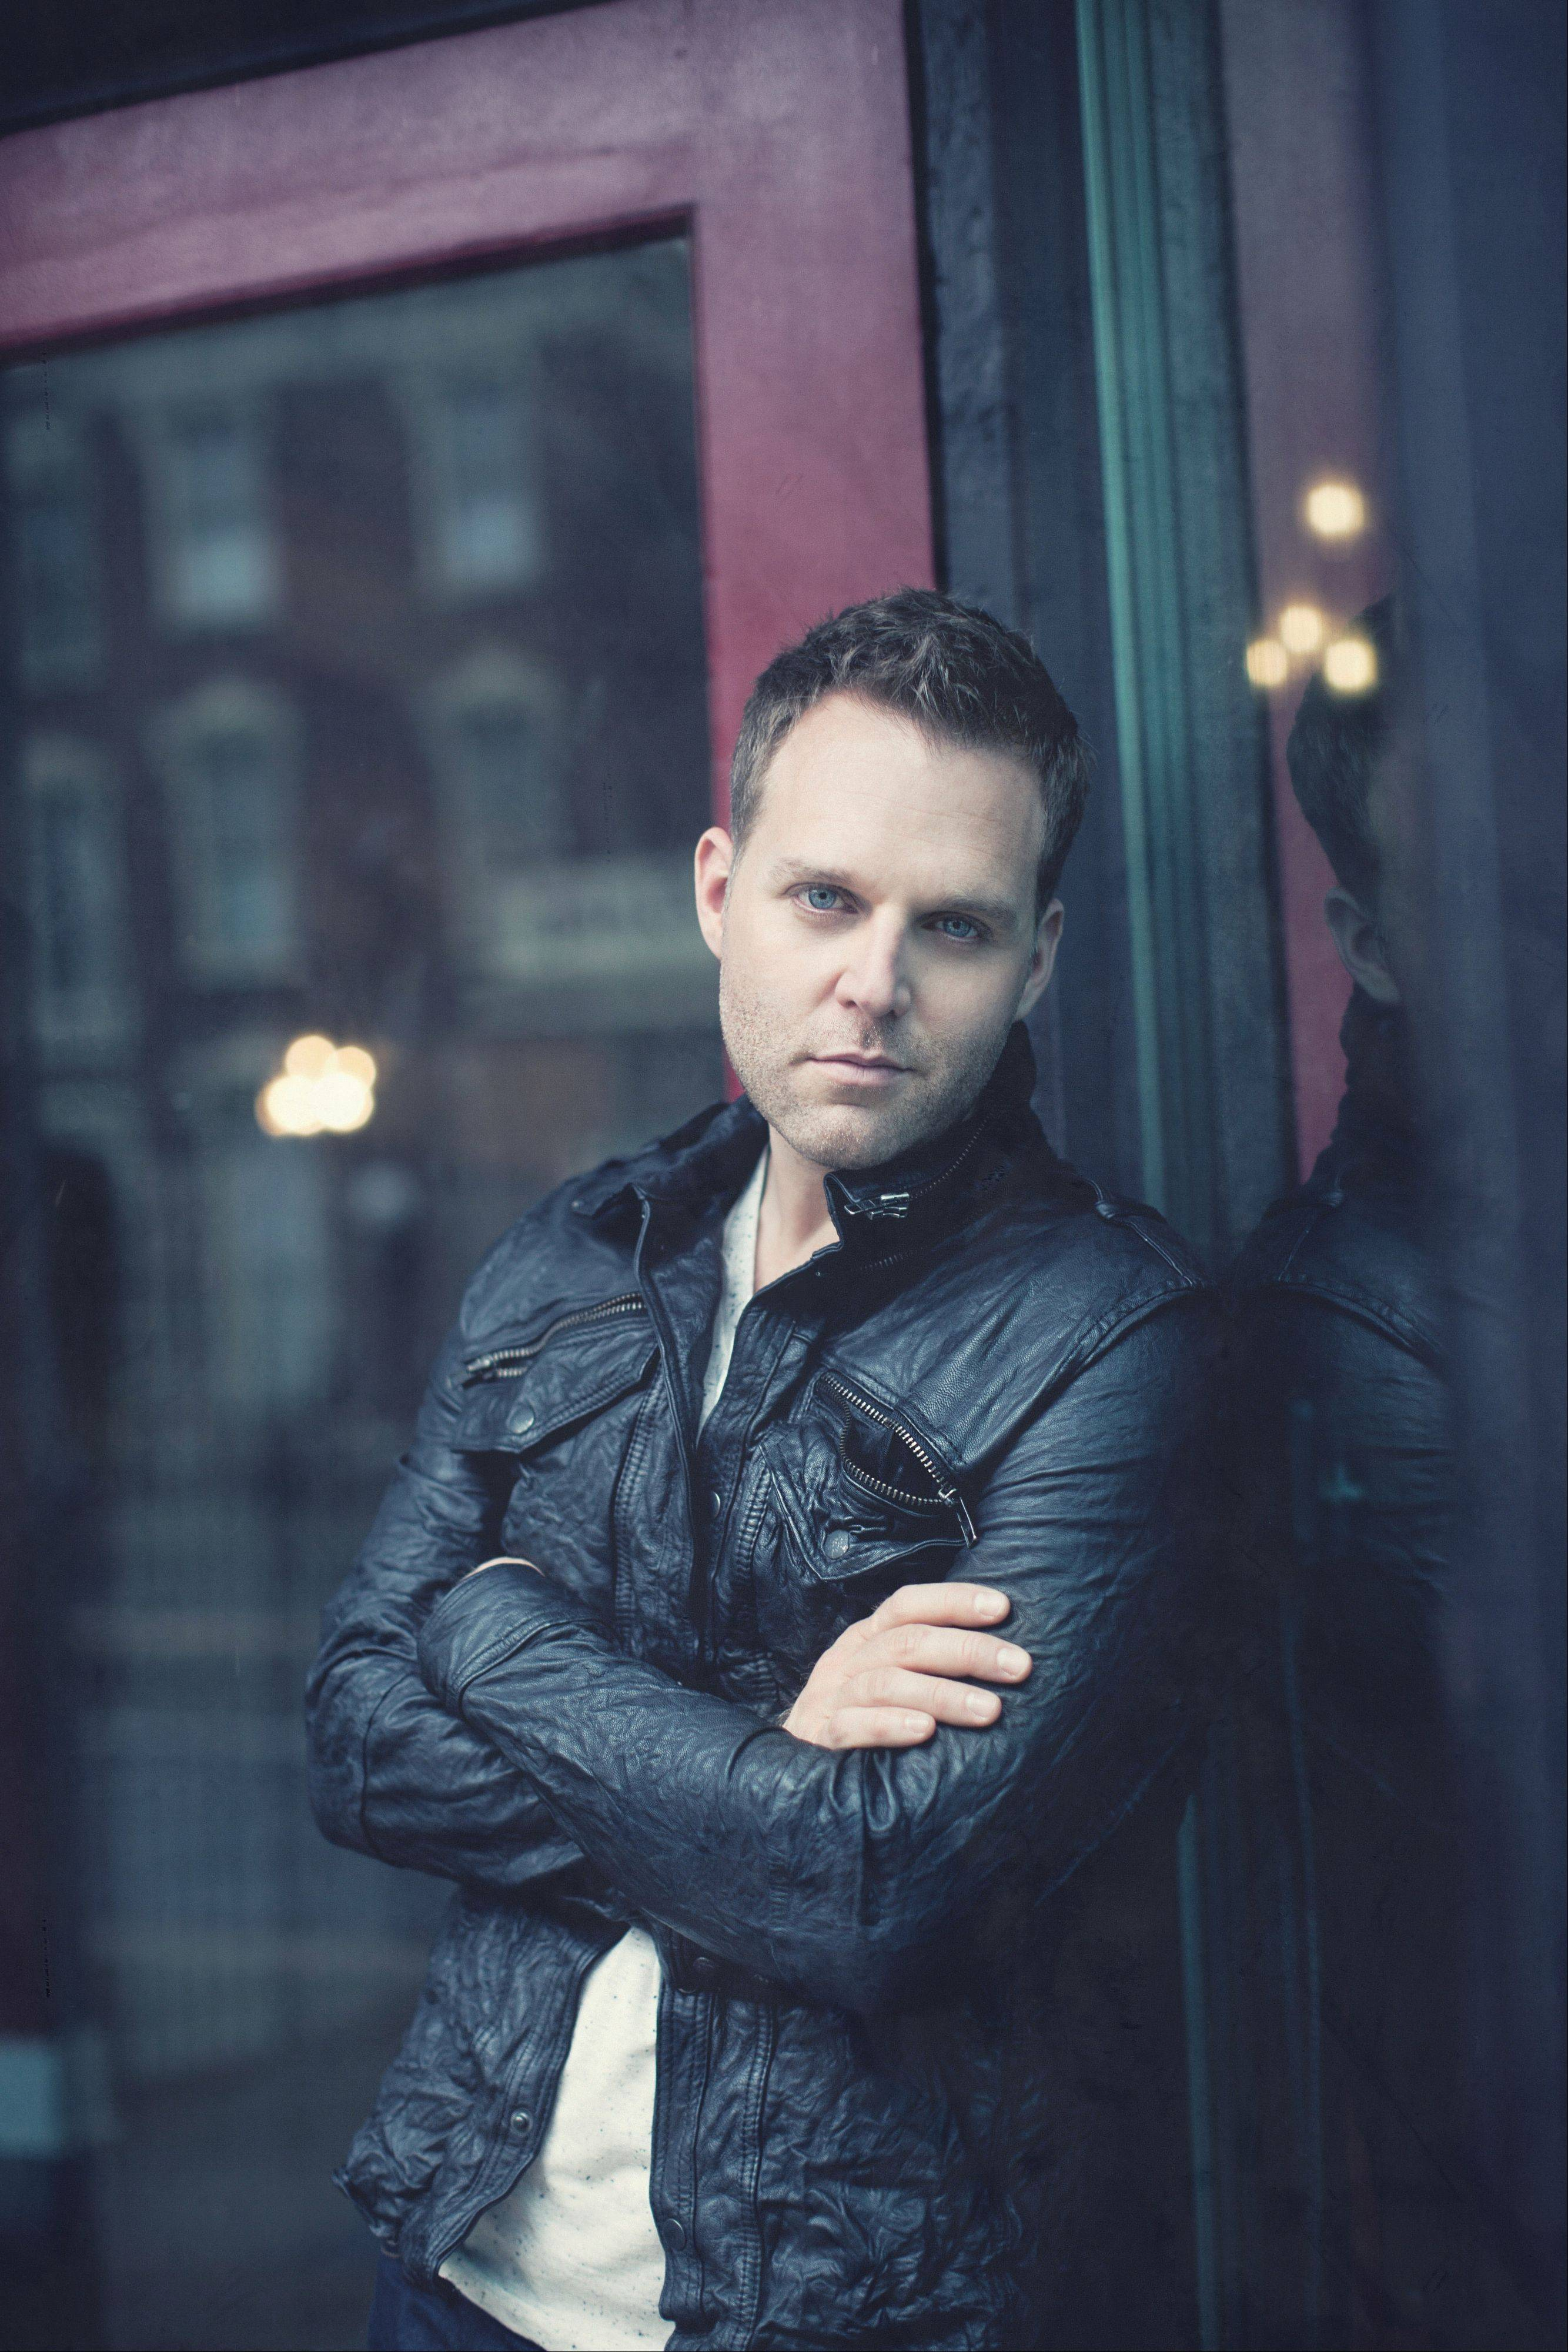 Christian music performer Matthew West is part of the Winter Jam 2013 Tour Spectacular at the Sears Centre Arena in Hoffman Estates on Saturday, Feb. 23.